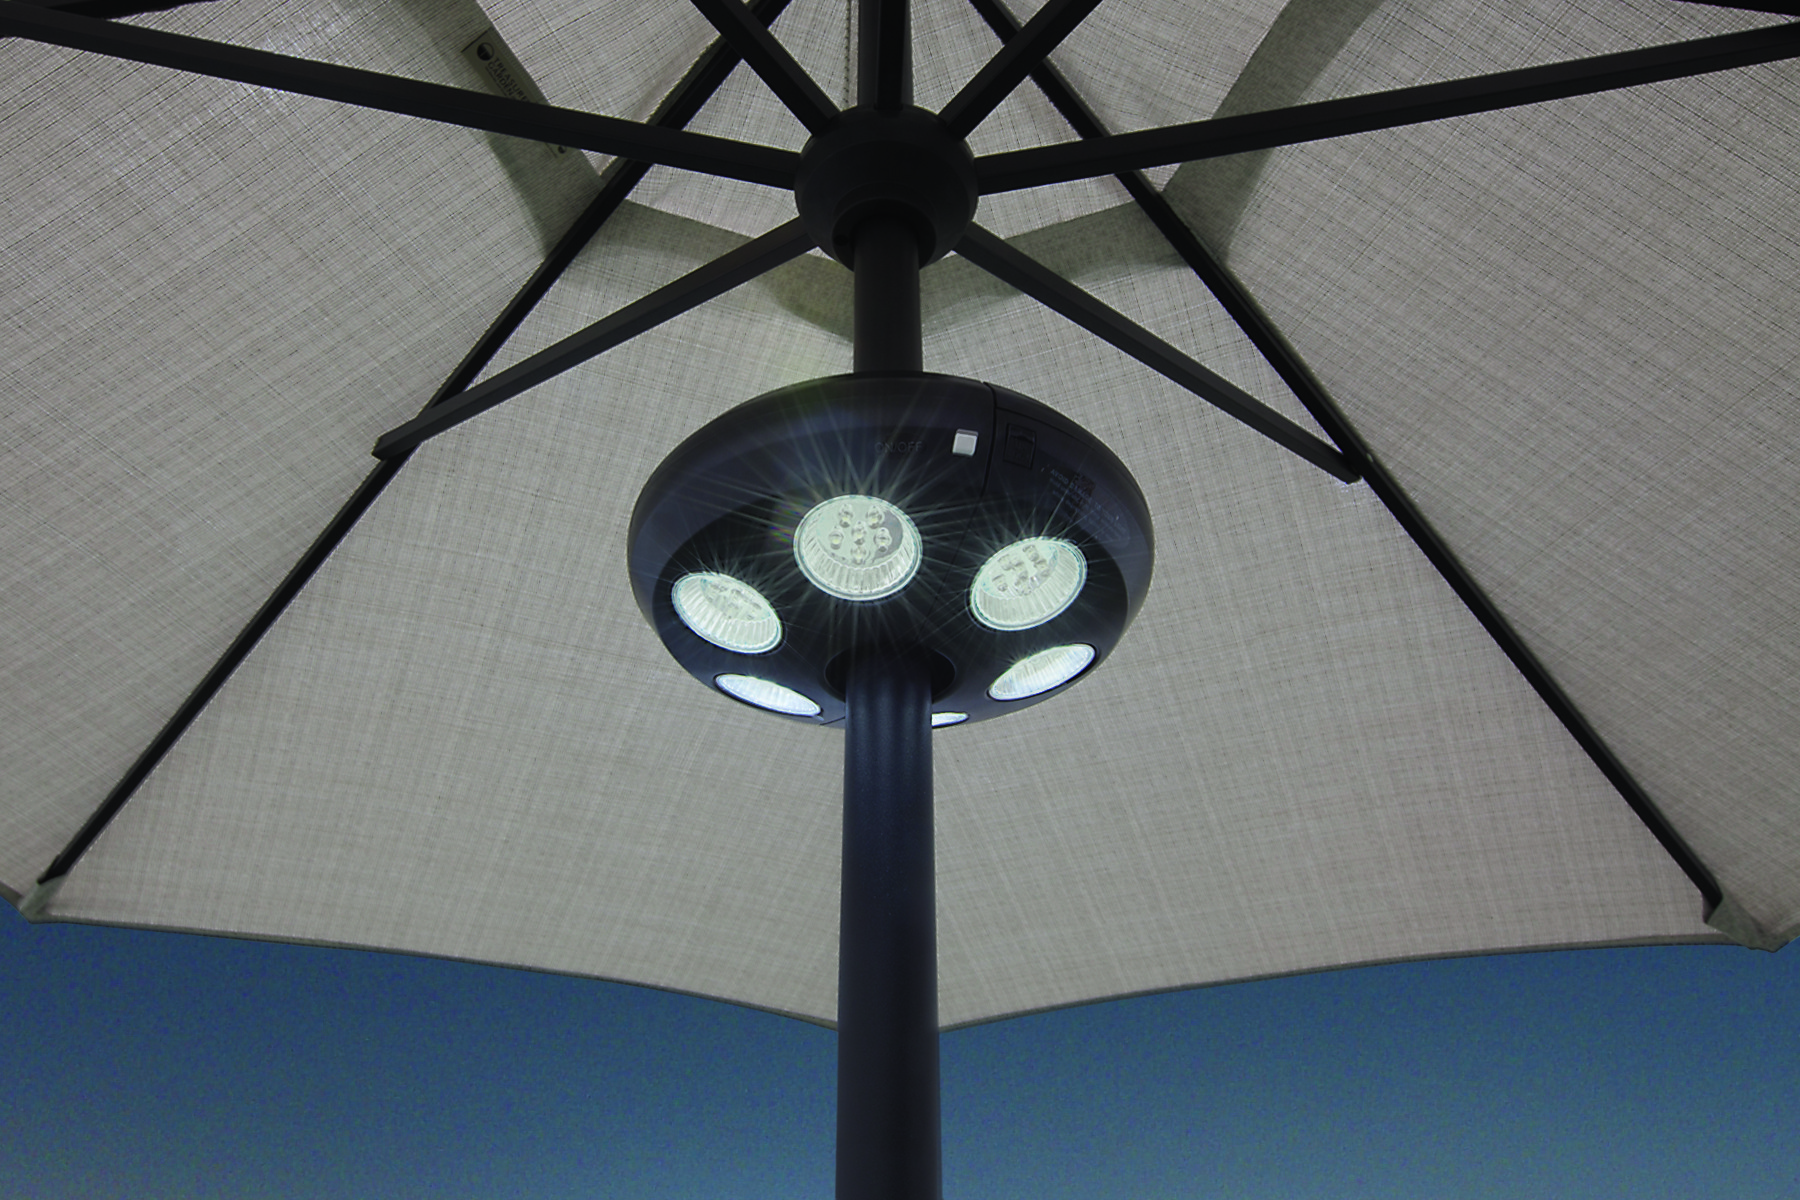 Large VEGA Umbrella Light w 36 LED Lights  Hausers Patio